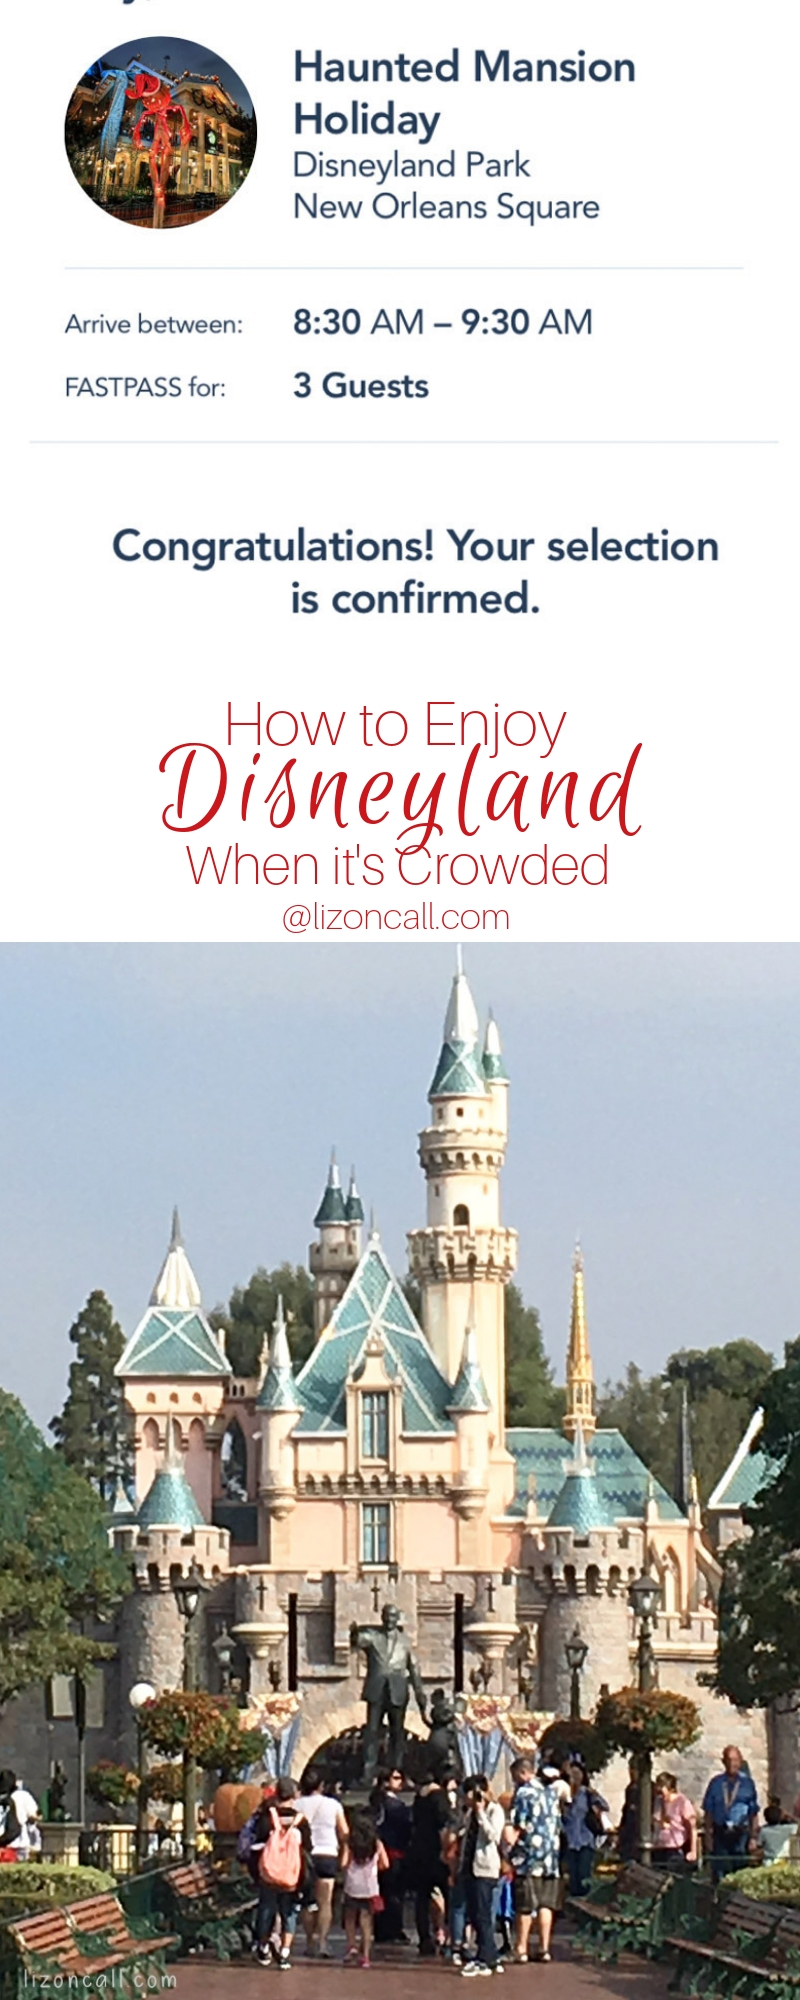 No matter what time of year you plan your trip to Disneyland, here are the best tips on How To Enjoy Disneyland When It's Crowded.